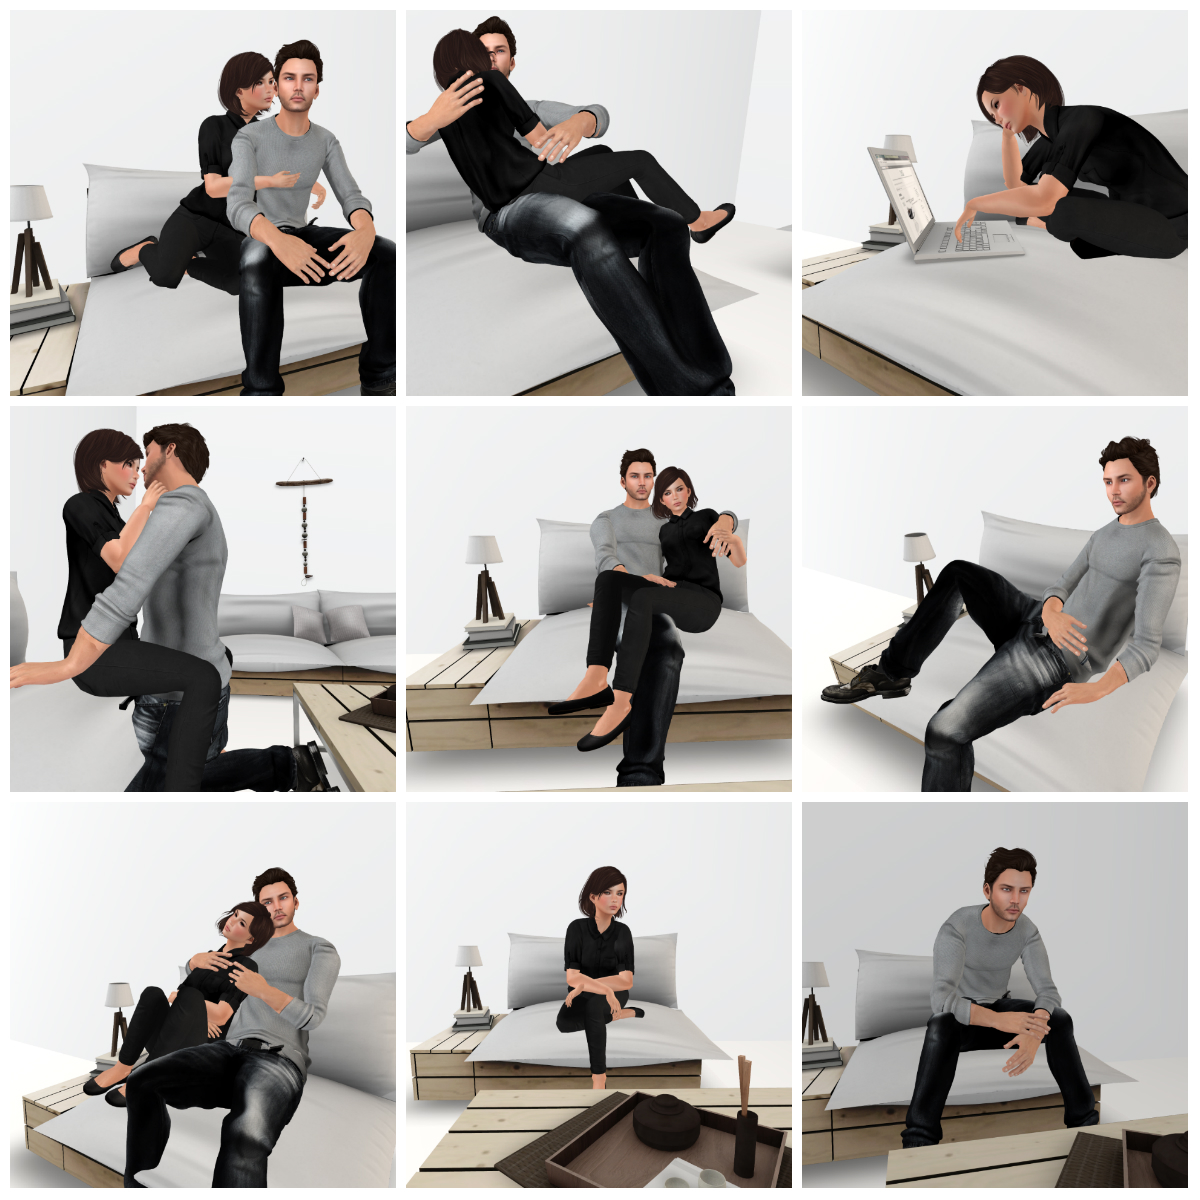 Charmant The Couch Has Couples Poses For MF, FF And MM Couples. You Can Sit,  Recline, Surf The Net, Drink Coffee, Eat Popcorn, Cuddle, Or Get Intimate  With This ...